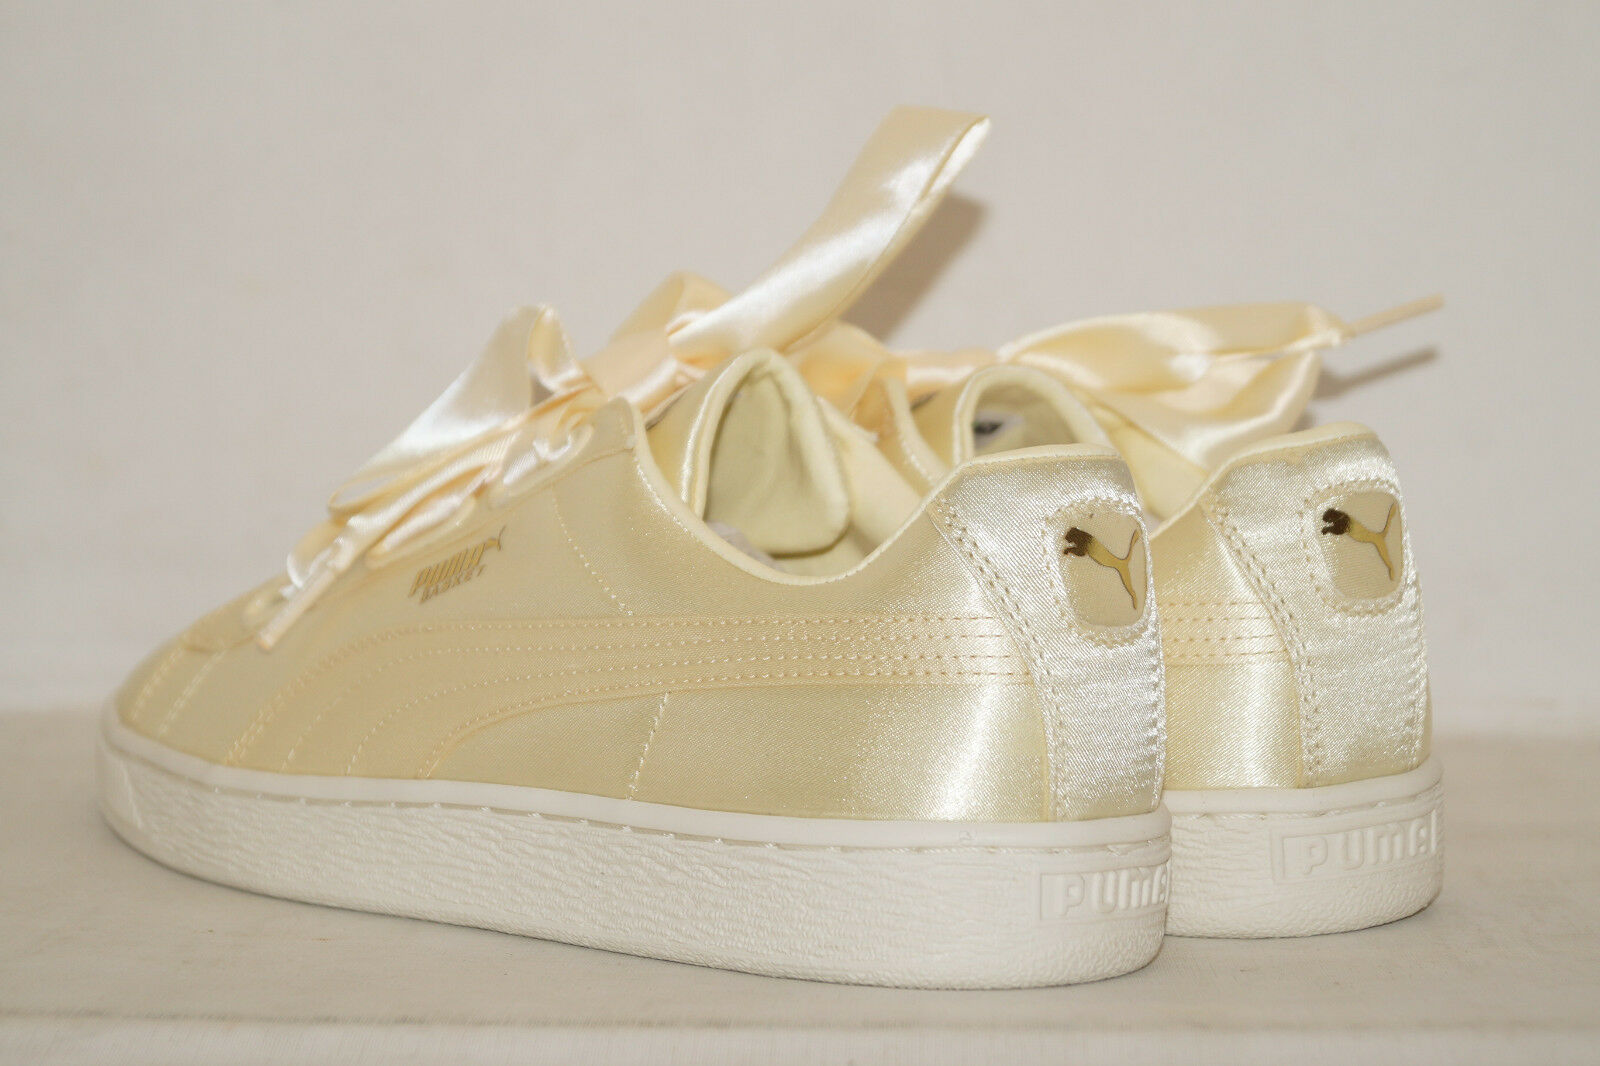 PUMA Basket Heart Satin Summer EU 40.5 weiss UK 7 gelb gold weiss 40.5 365662-02 Damen WMNS ea1397